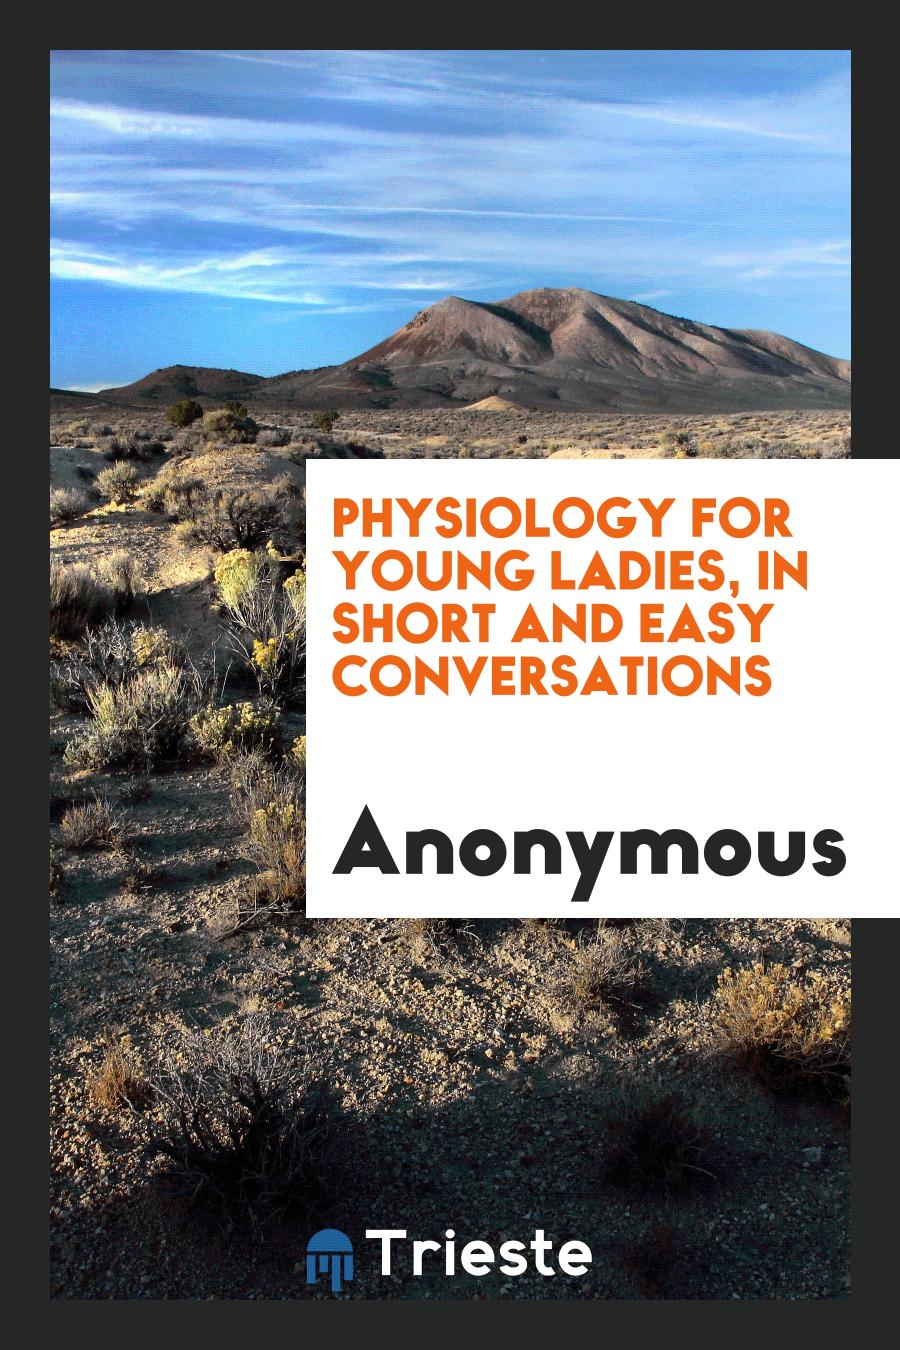 Physiology for Young Ladies, in Short and Easy Conversations